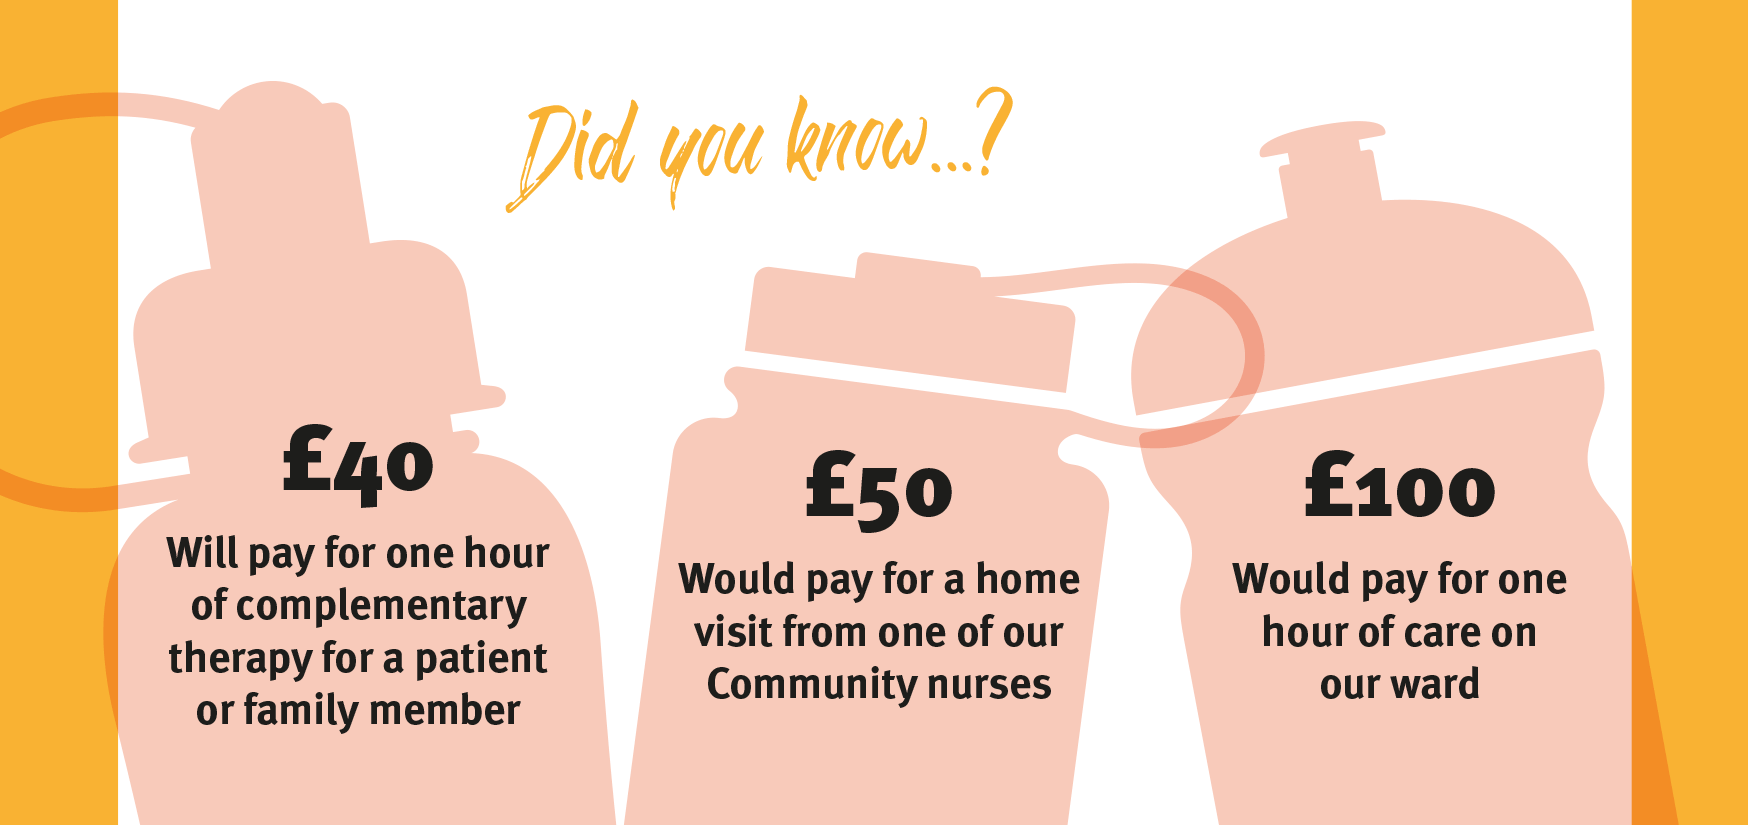 Did you know your fundraising efforts would make a real difference to local people with terminal illnesses